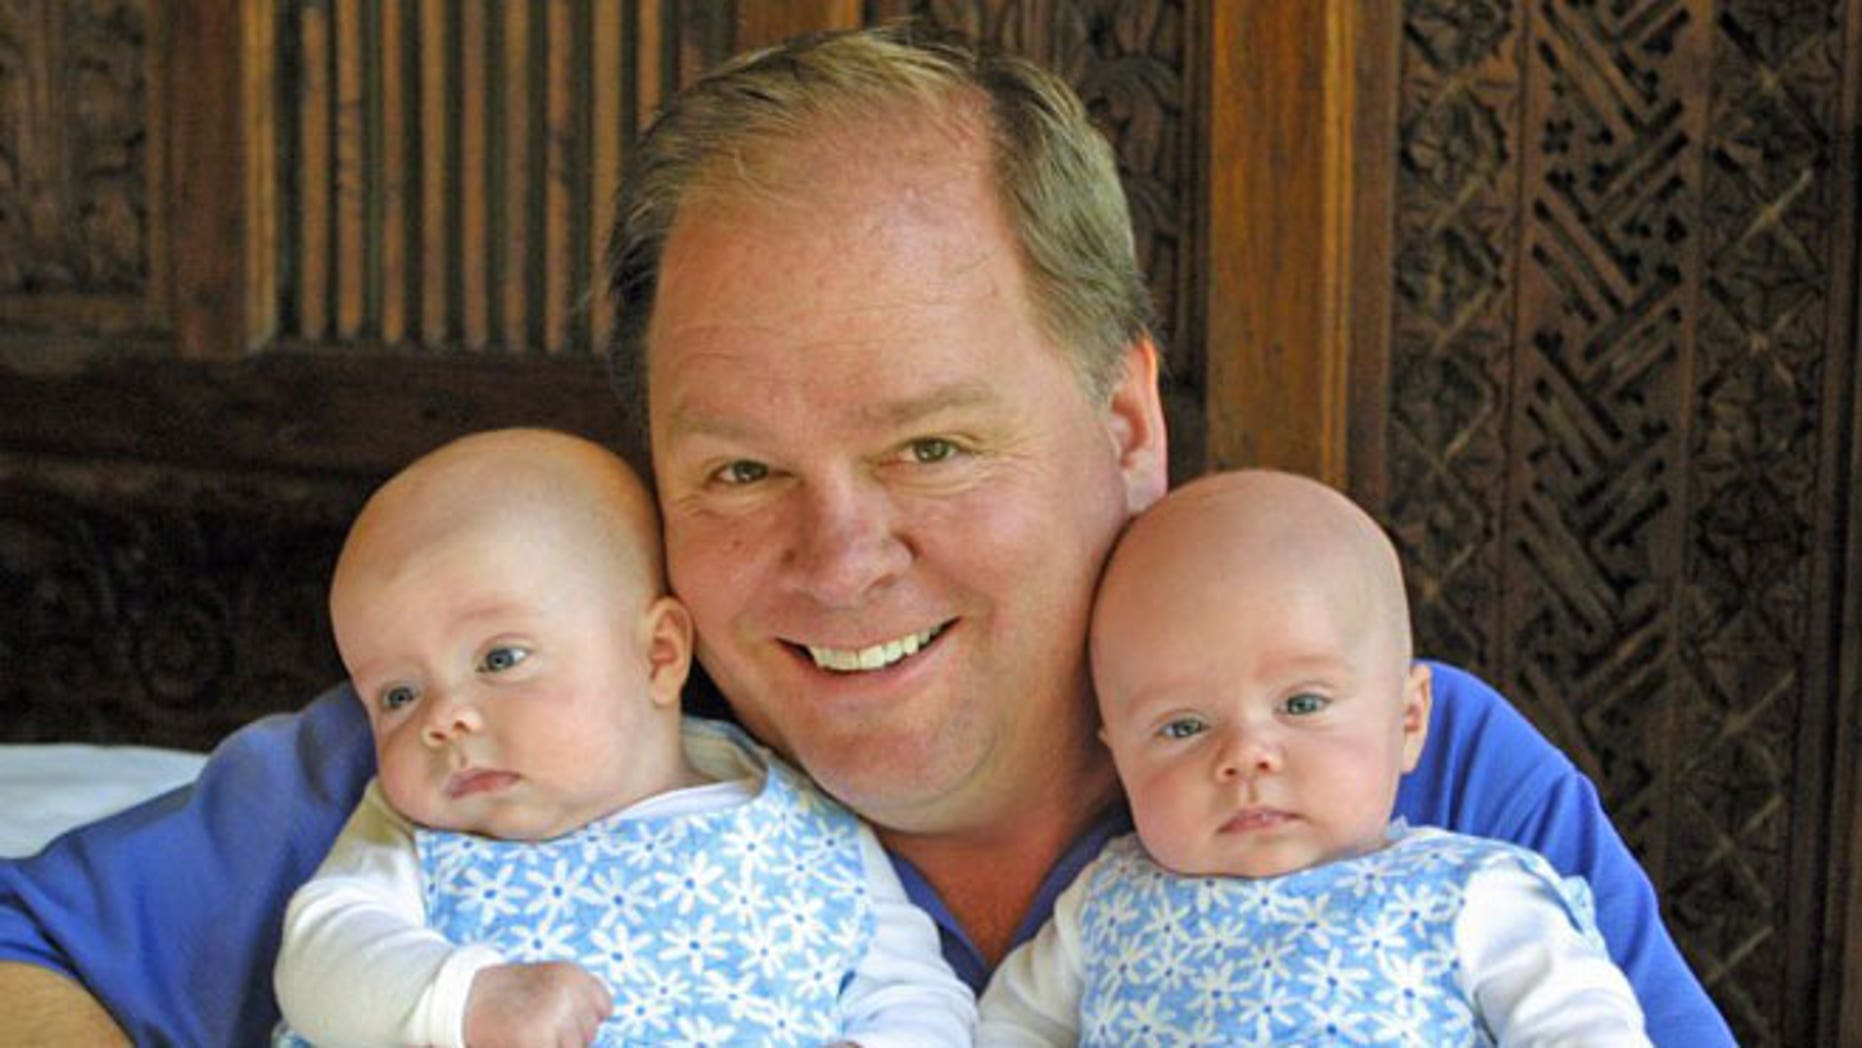 Hugh Hempel with his twin daughters, Addi and Cassi.